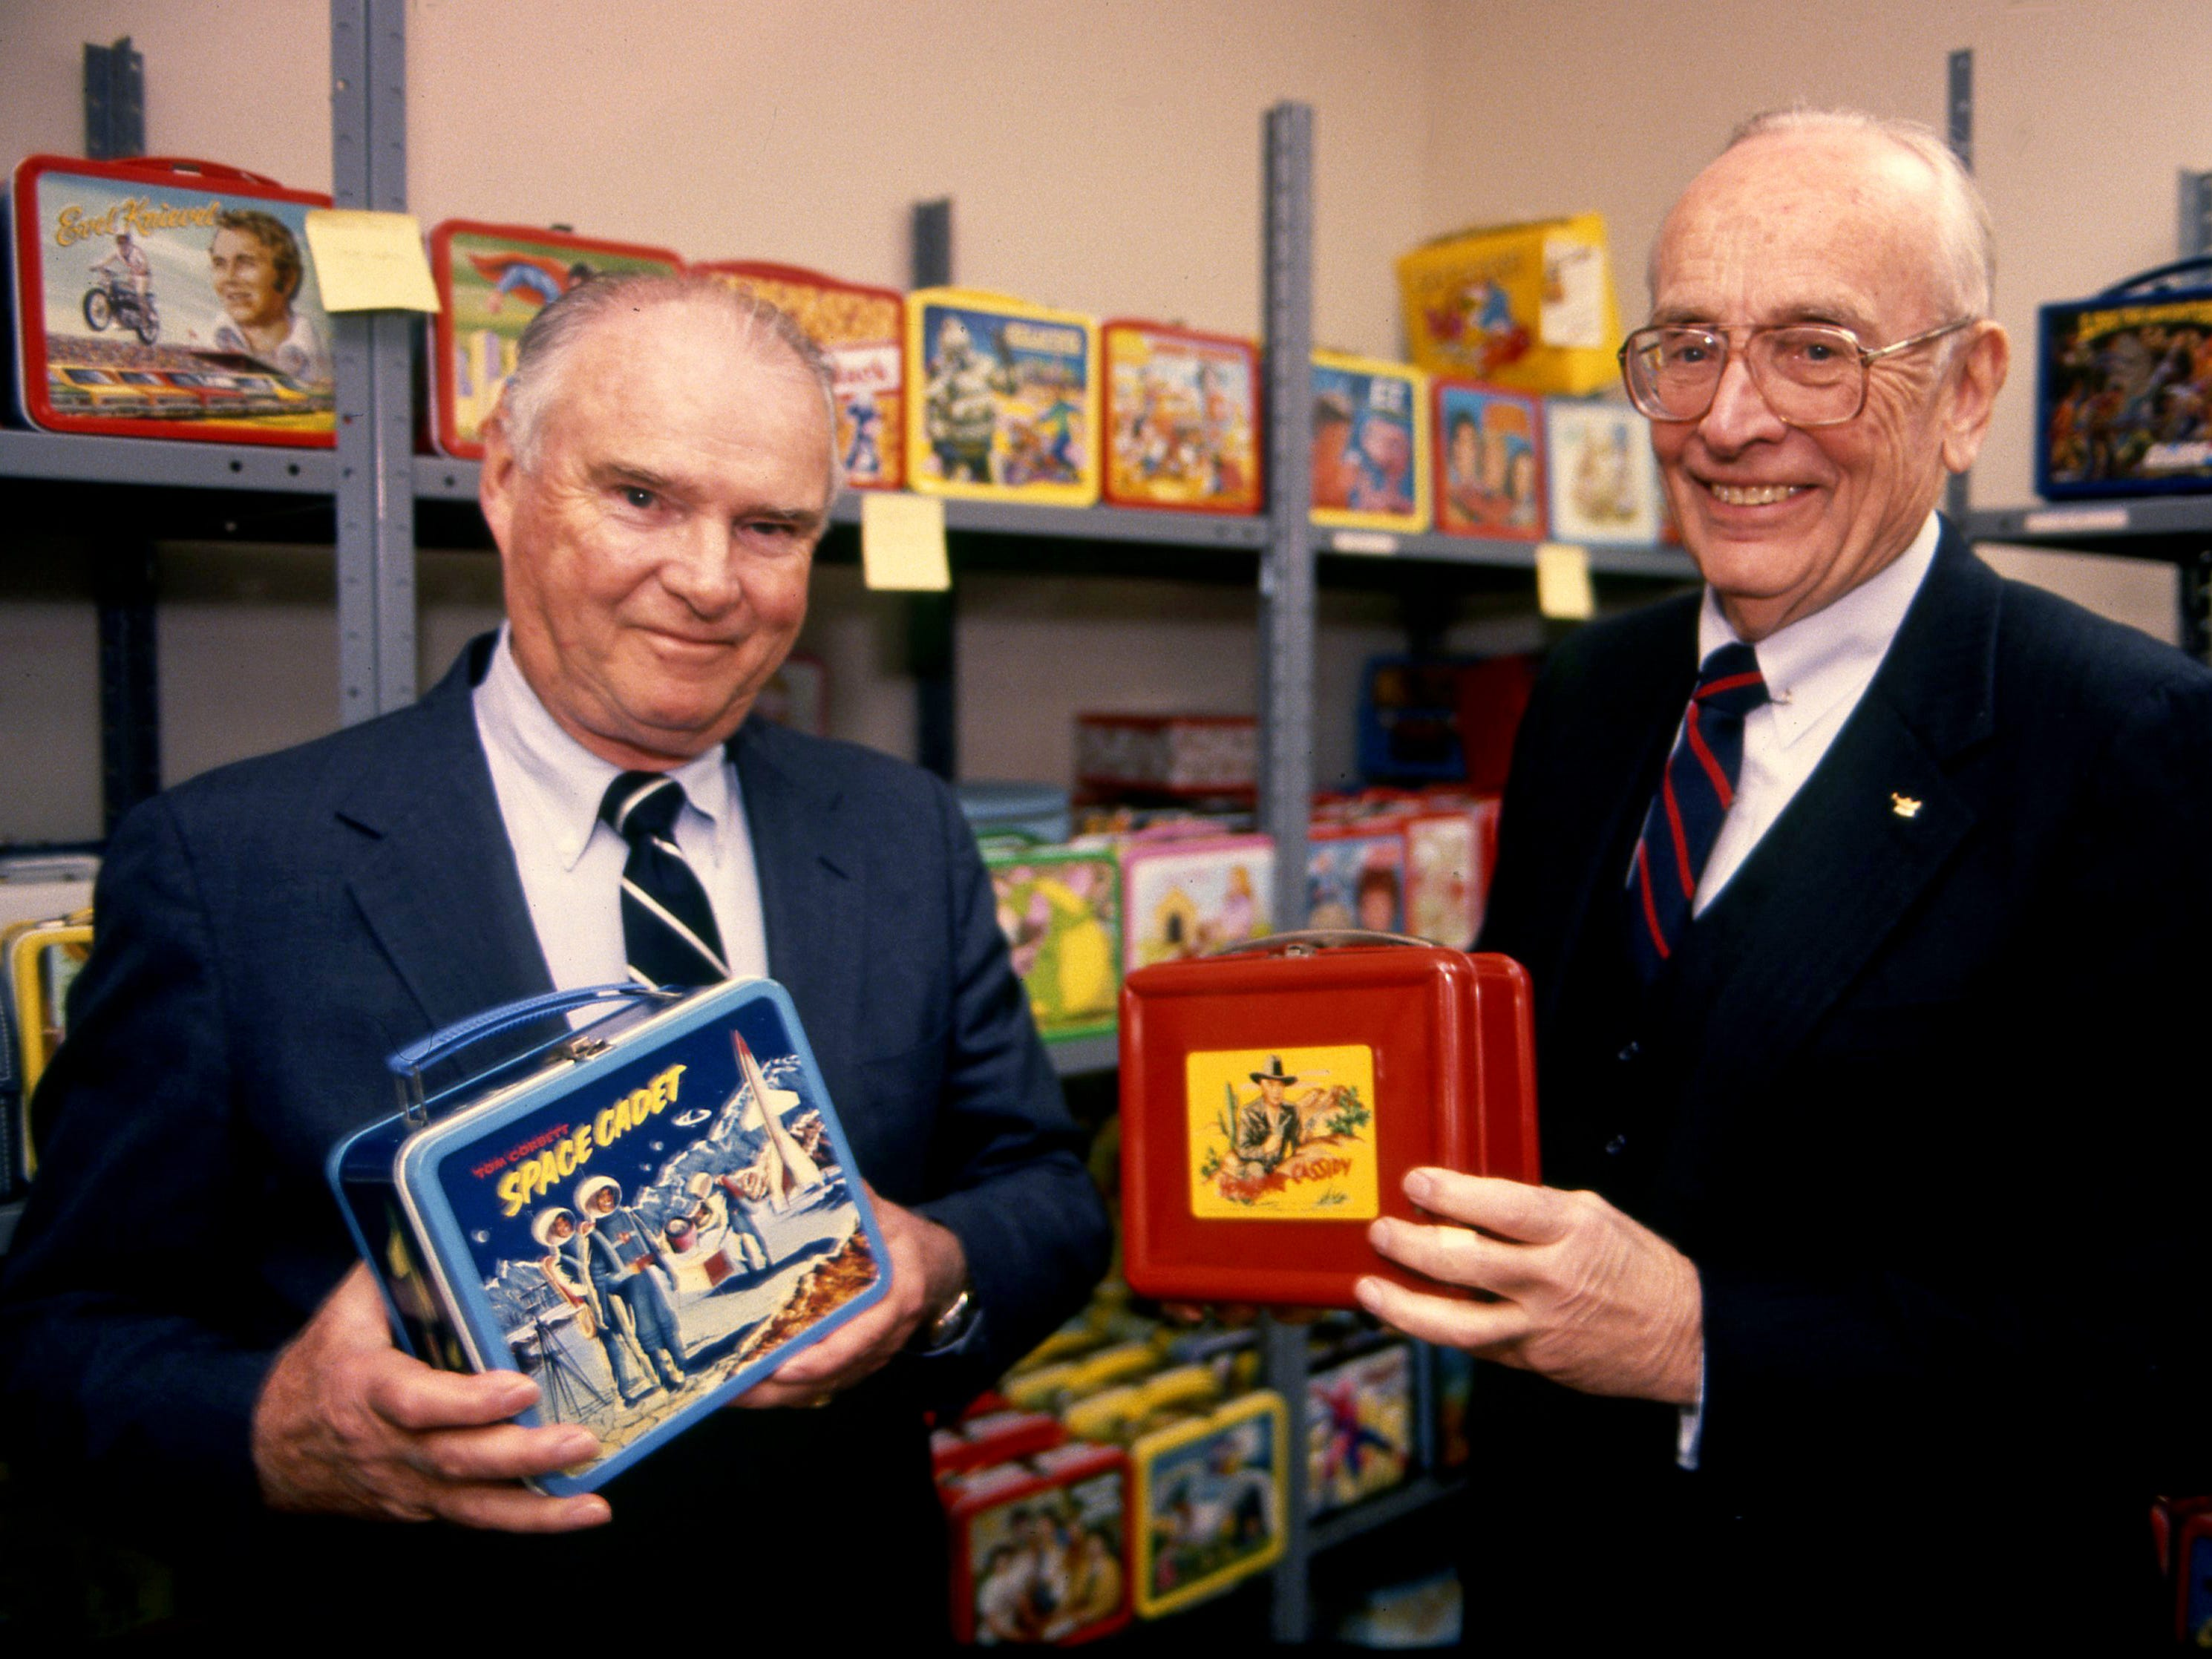 Victor Johnson Jr., right, holds a Hopalong Cassidy lunch box, which revolutionized the industry when Aladdin introduced it in 1950. George Cole displays Aladdin's second lunch box to feature a hero figure, Tom Corbett - Space Cadet.